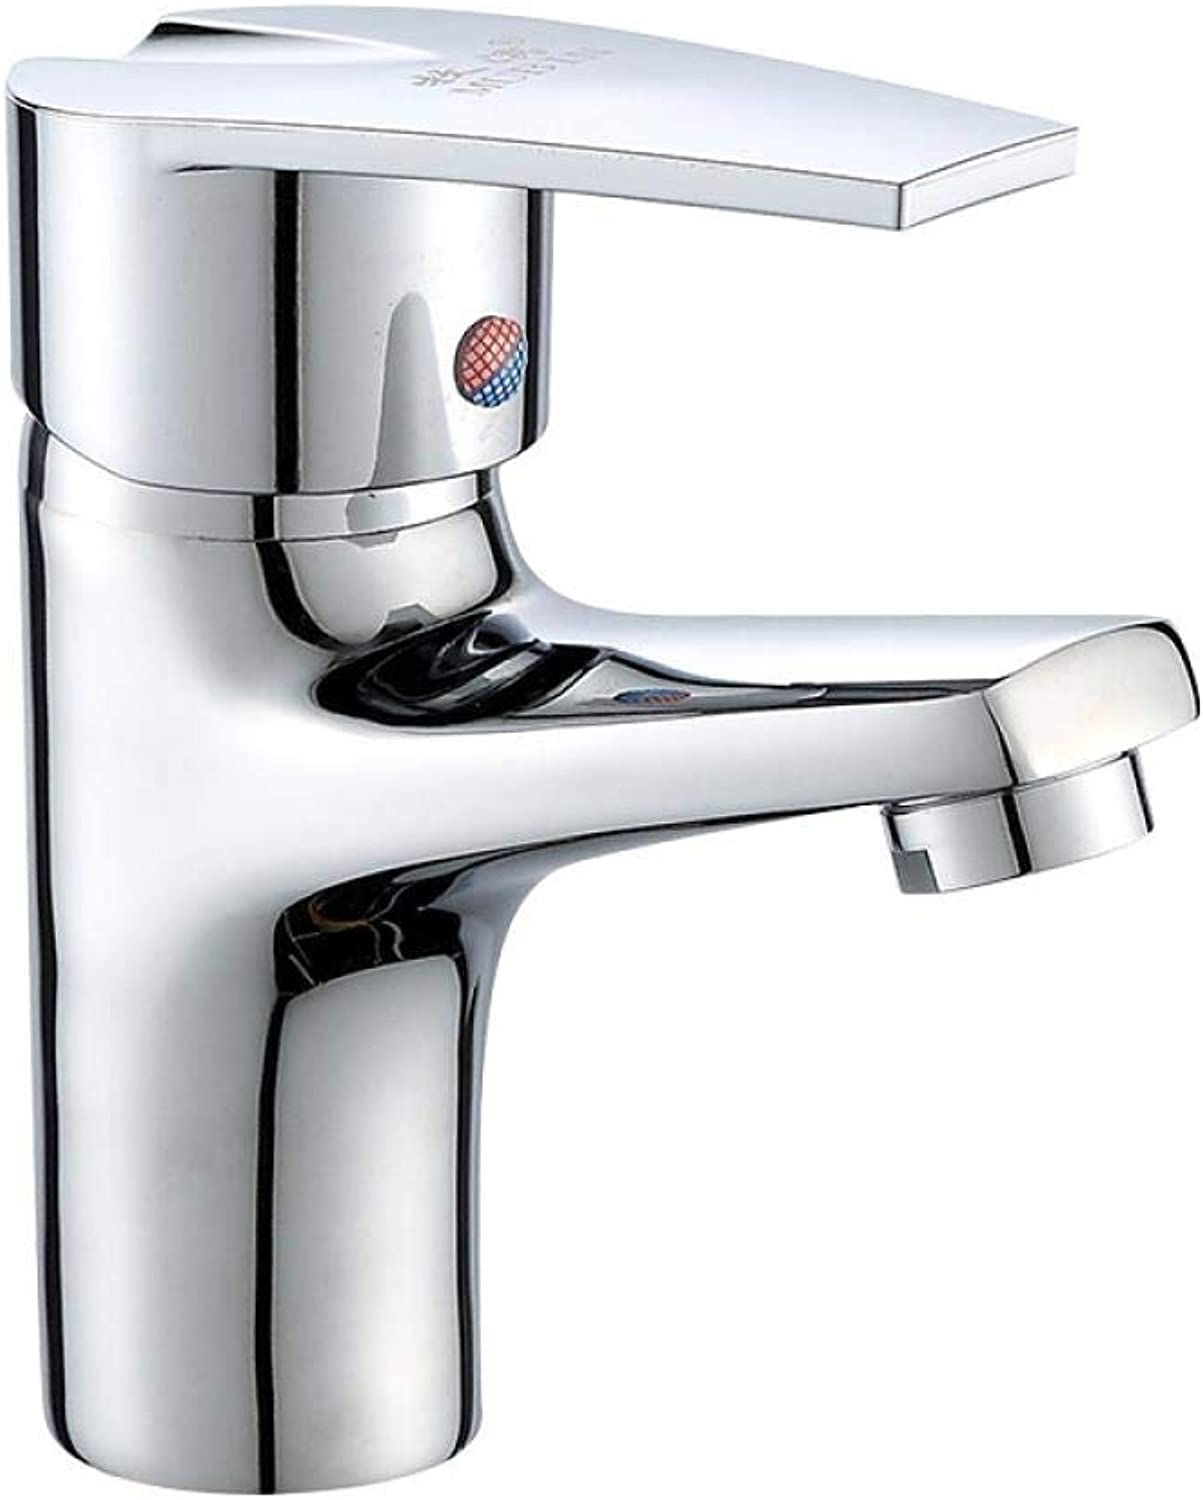 Copper Washbasin Single Hole Hot and Cold Water Faucet Z838